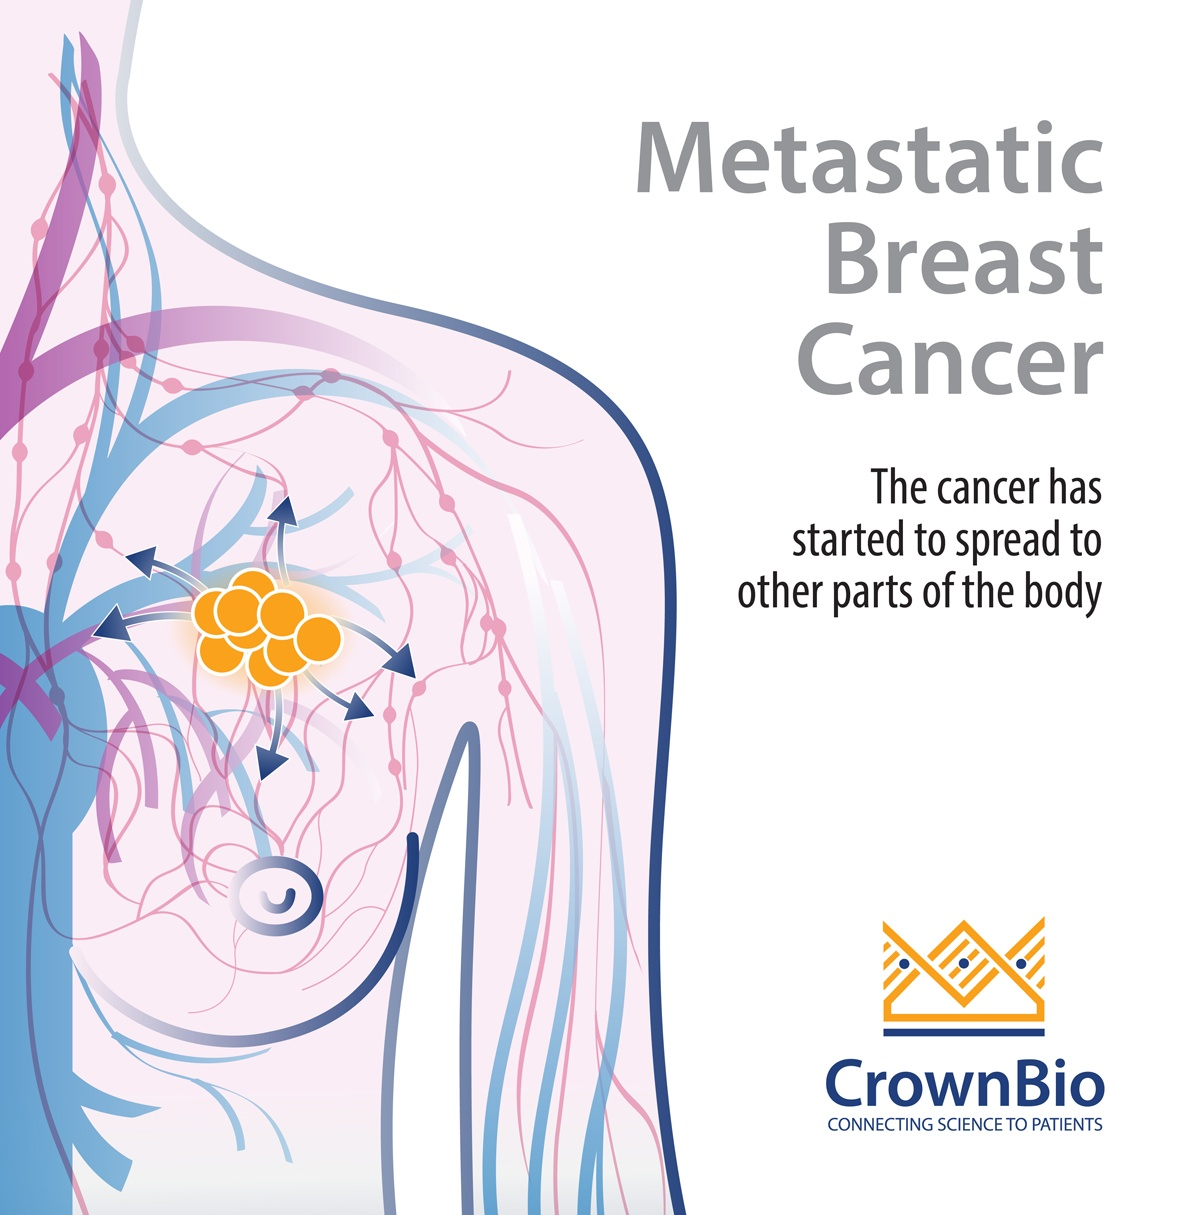 Why PDX Are Needed for Metastatic Breast Cancer Research